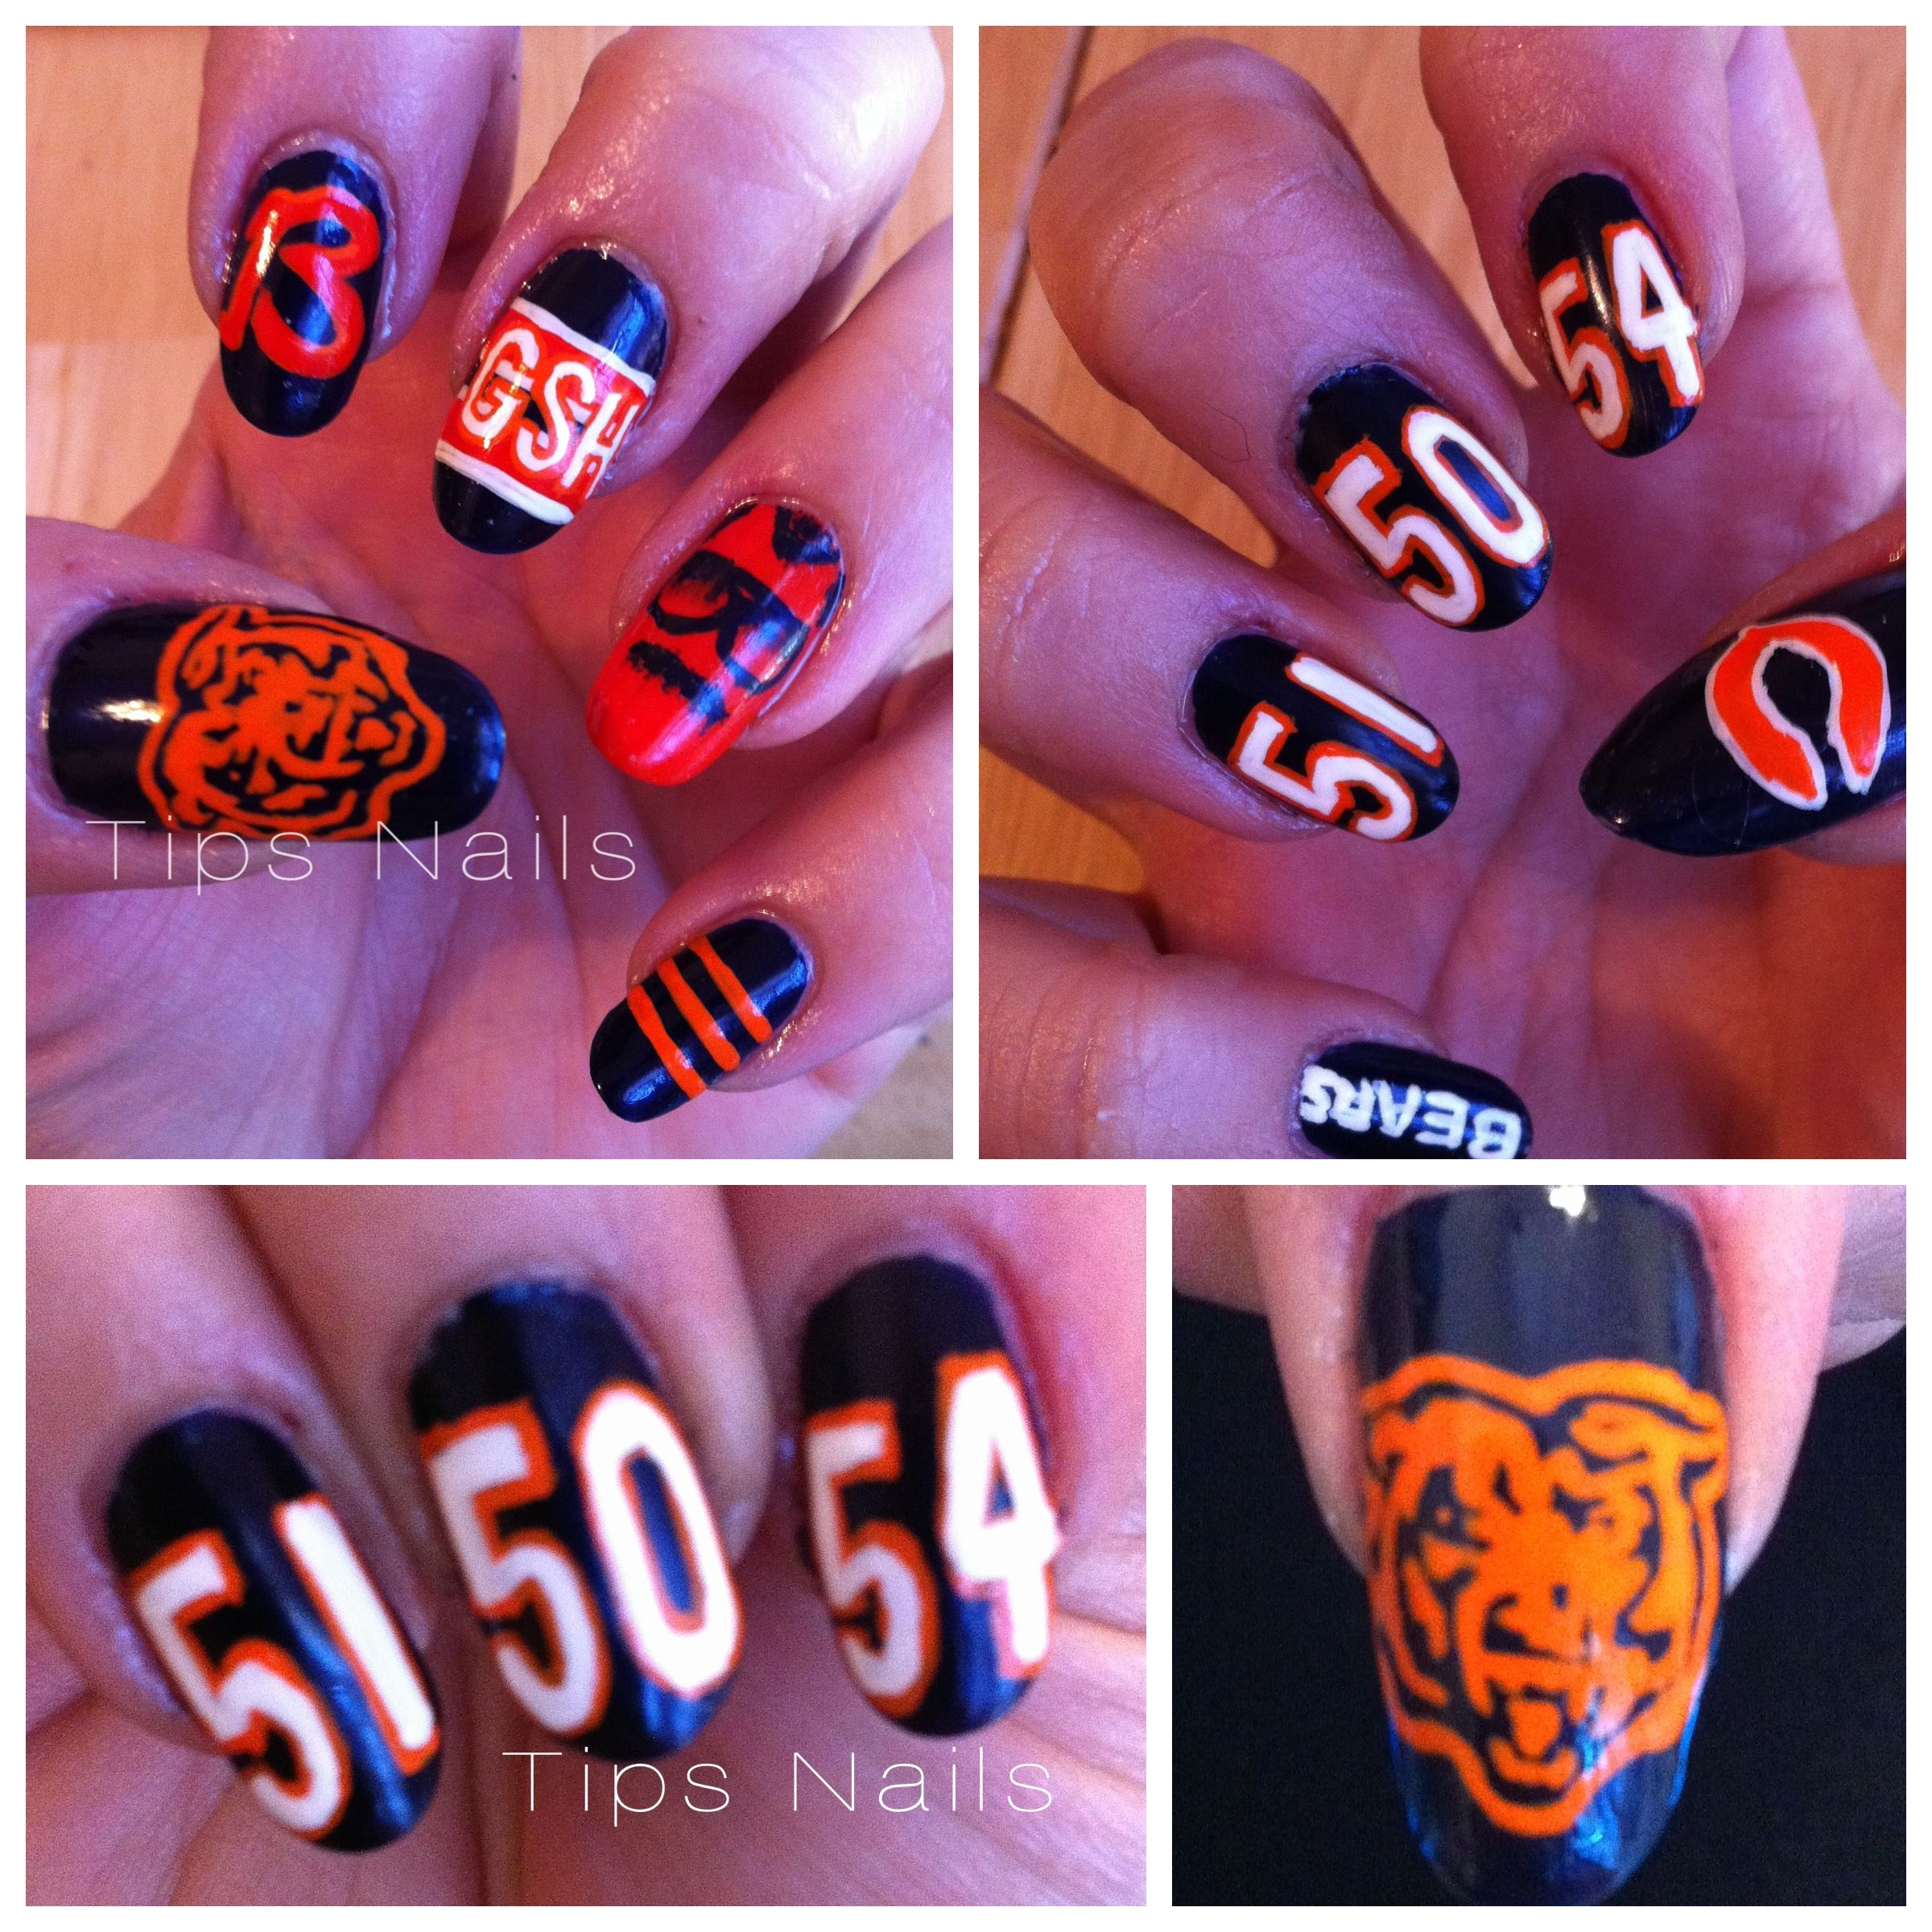 Chicago Bears Nails Free Hand Painted Pop Nails With Orly Instant Artist Formerly Tips Nails Visit Me In Chicago Bears Nails Chicago Bears Nails Nails